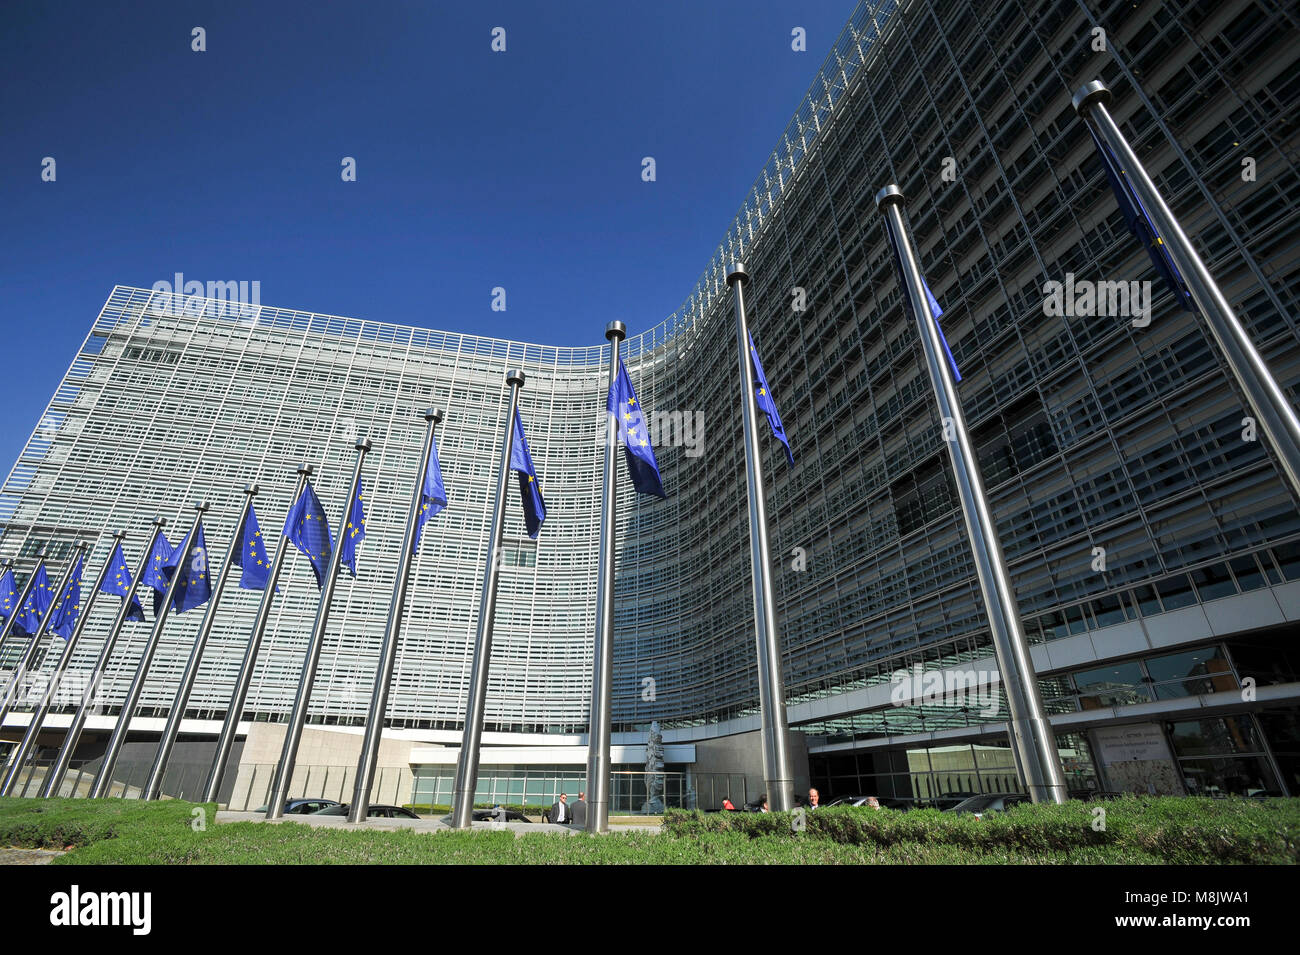 EU flags in front of Berlaymont building, headquarters of the European Commission, on Rue de la Loi / Wetstraat - Stock Image